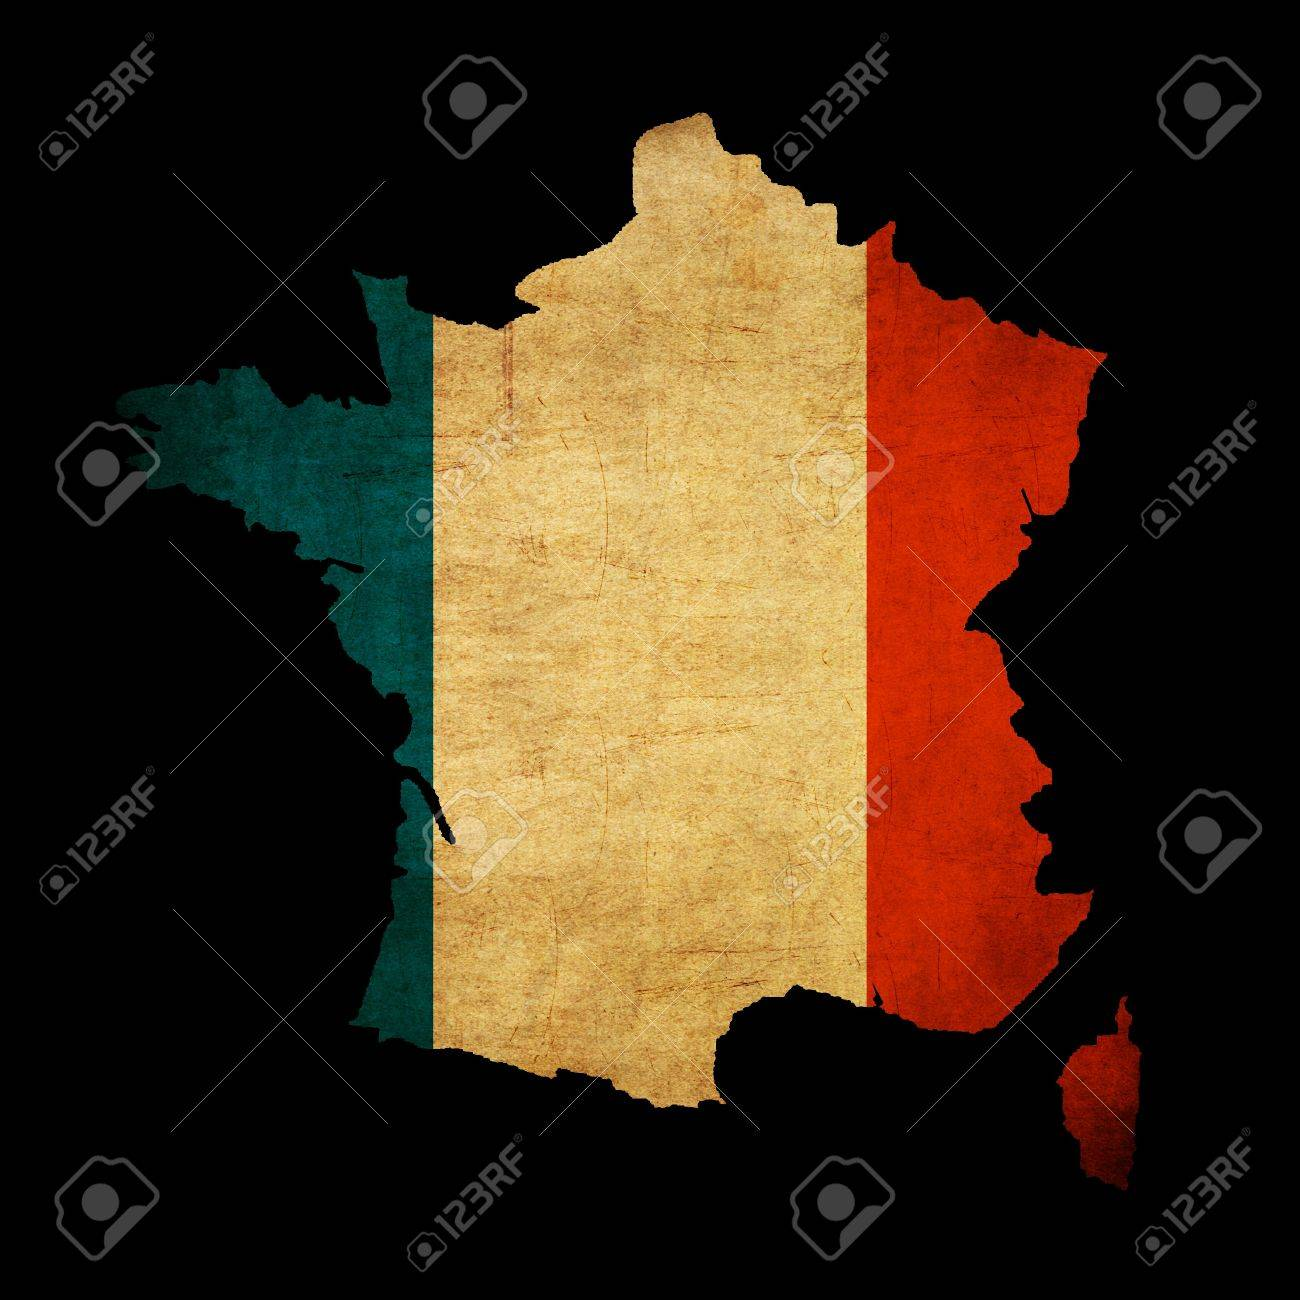 map outline of france with flag insert grunge effect stock photo